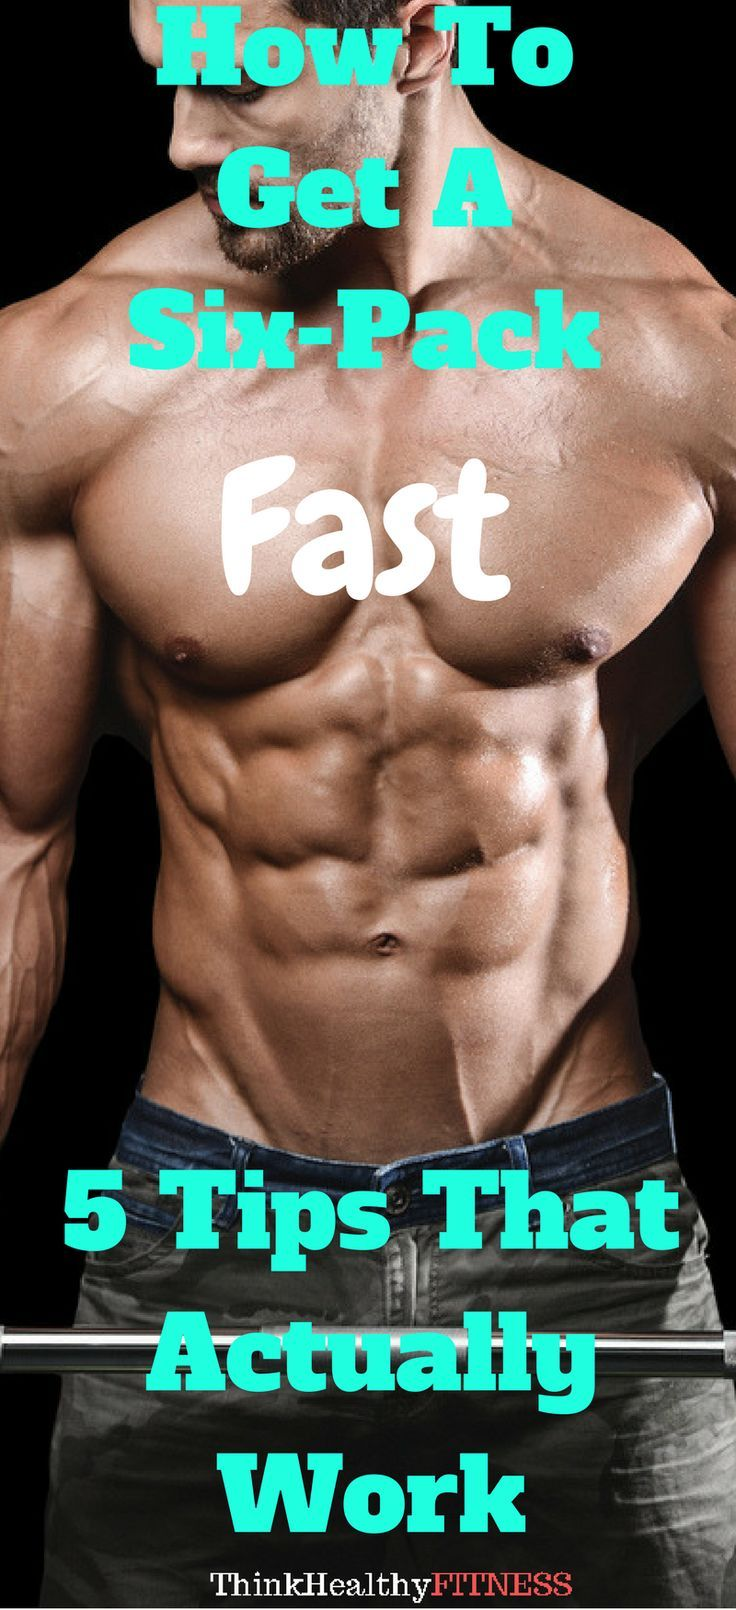 who started six pack abs fasting diet